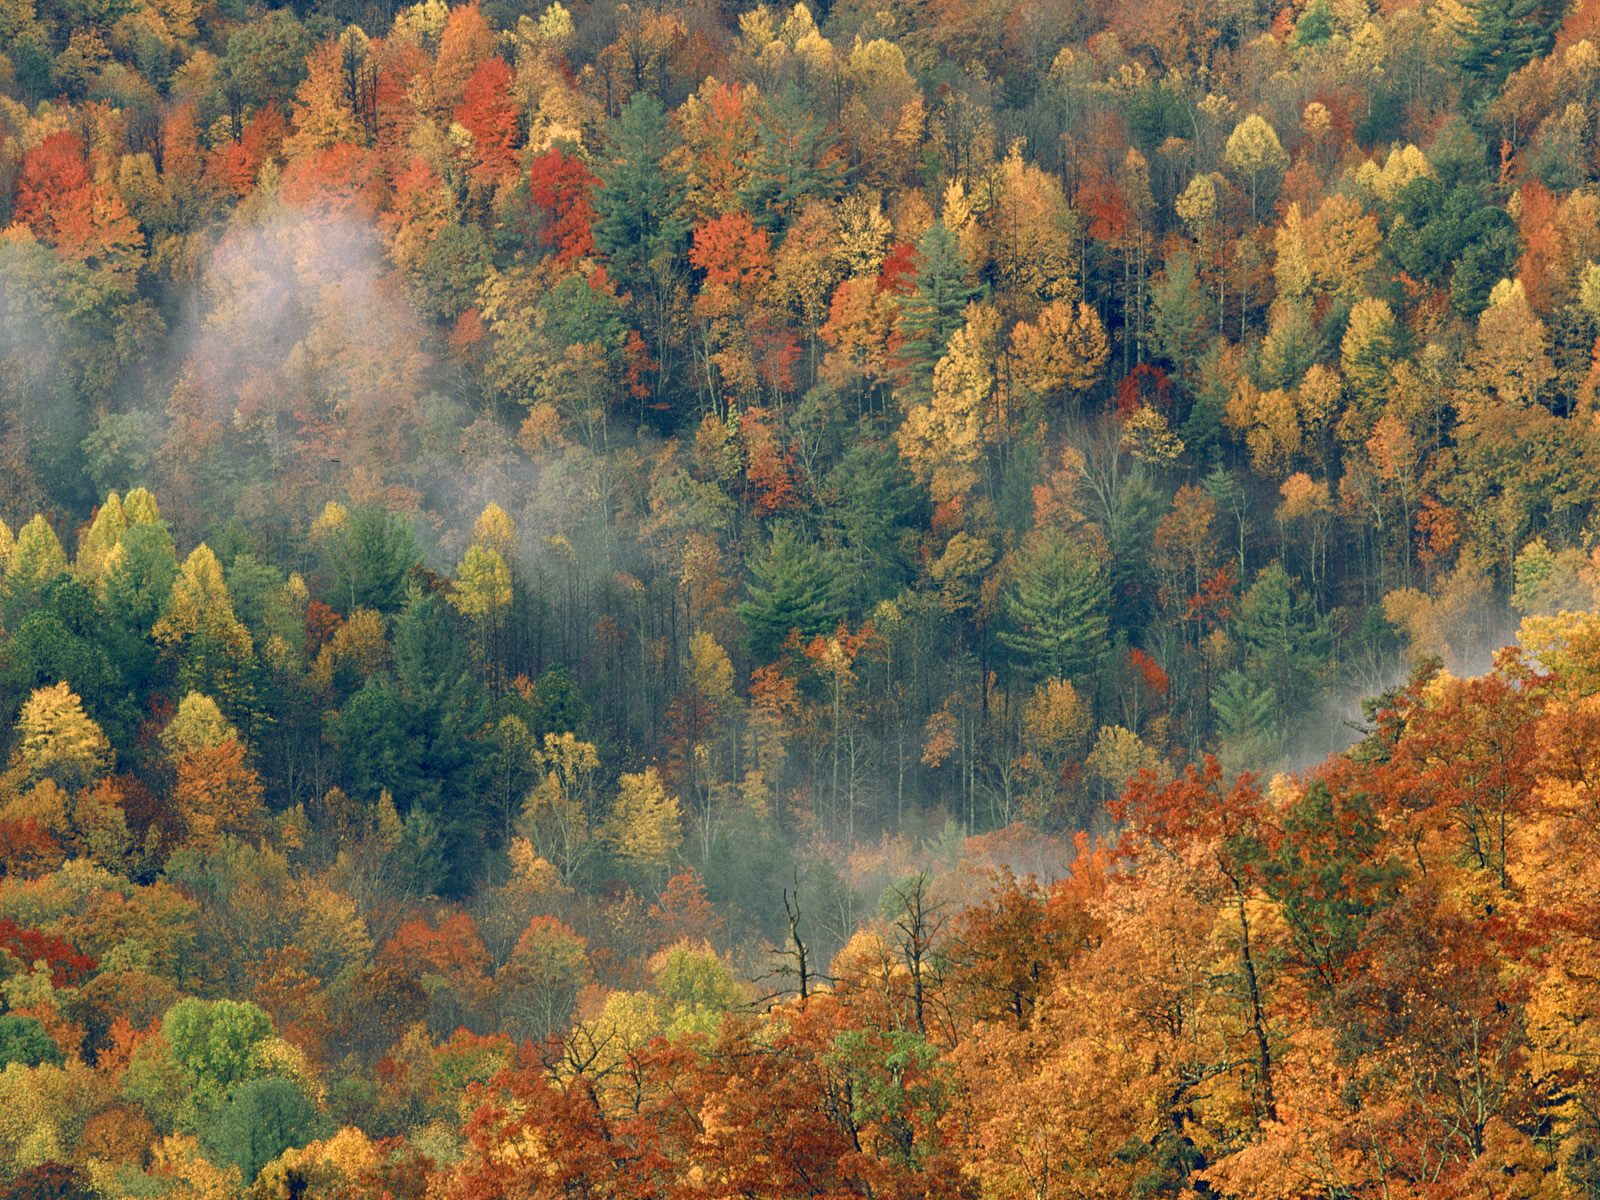 http://3.bp.blogspot.com/-4H_6BtNeZLU/T_0XXuoTvBI/AAAAAAAAHDc/-jwMmpjaW5Q/s1600/Colorful+Autumn+Forest,+Great+Smoky+National+Park,+Tennessee.jpg